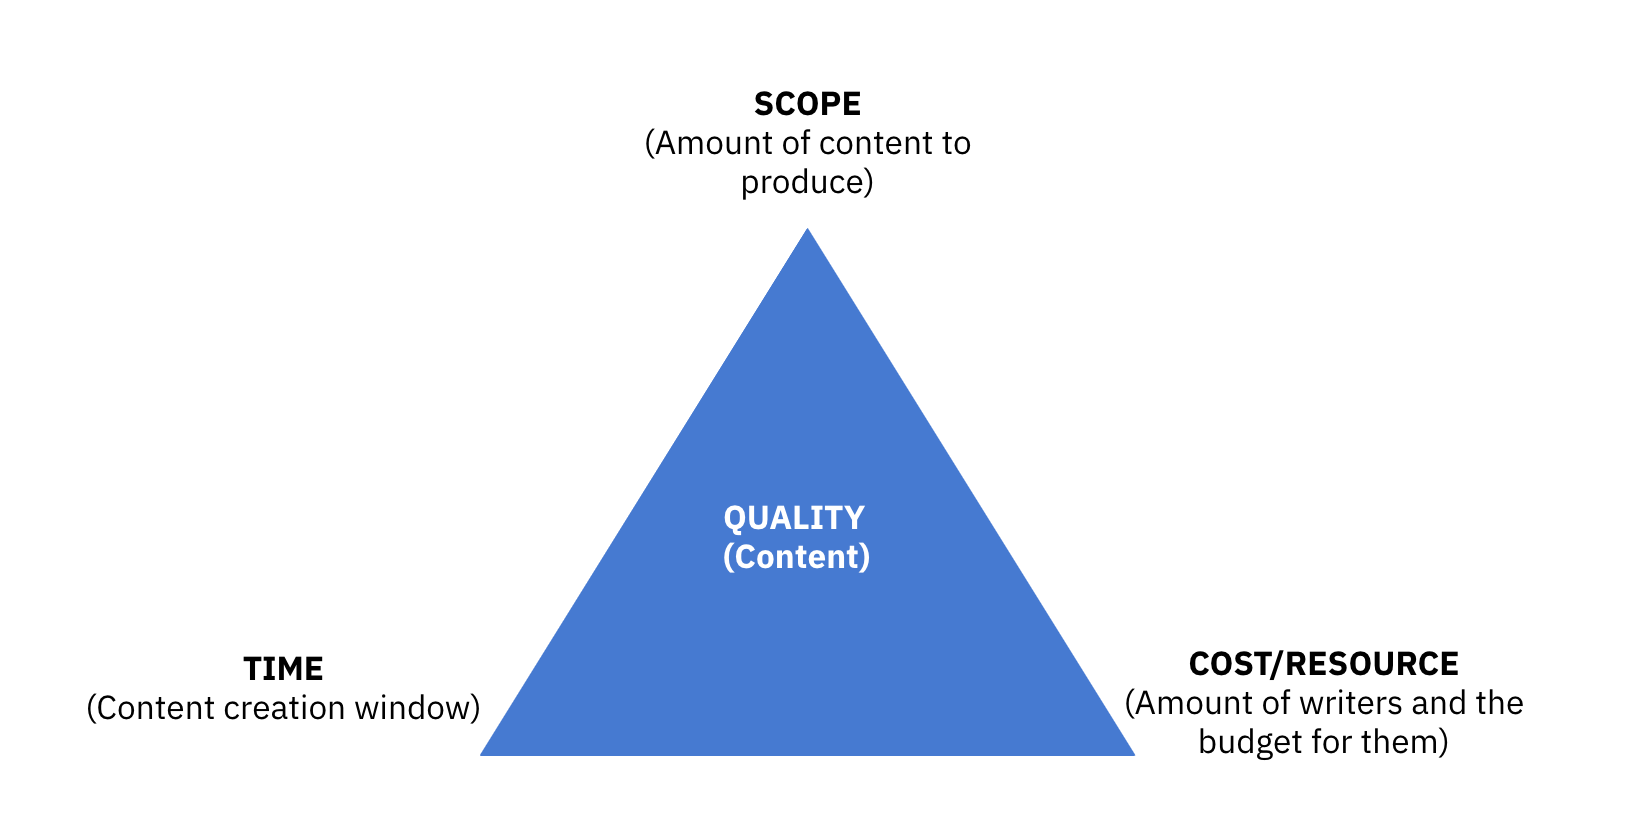 Content creation: Content cost estimation triangle